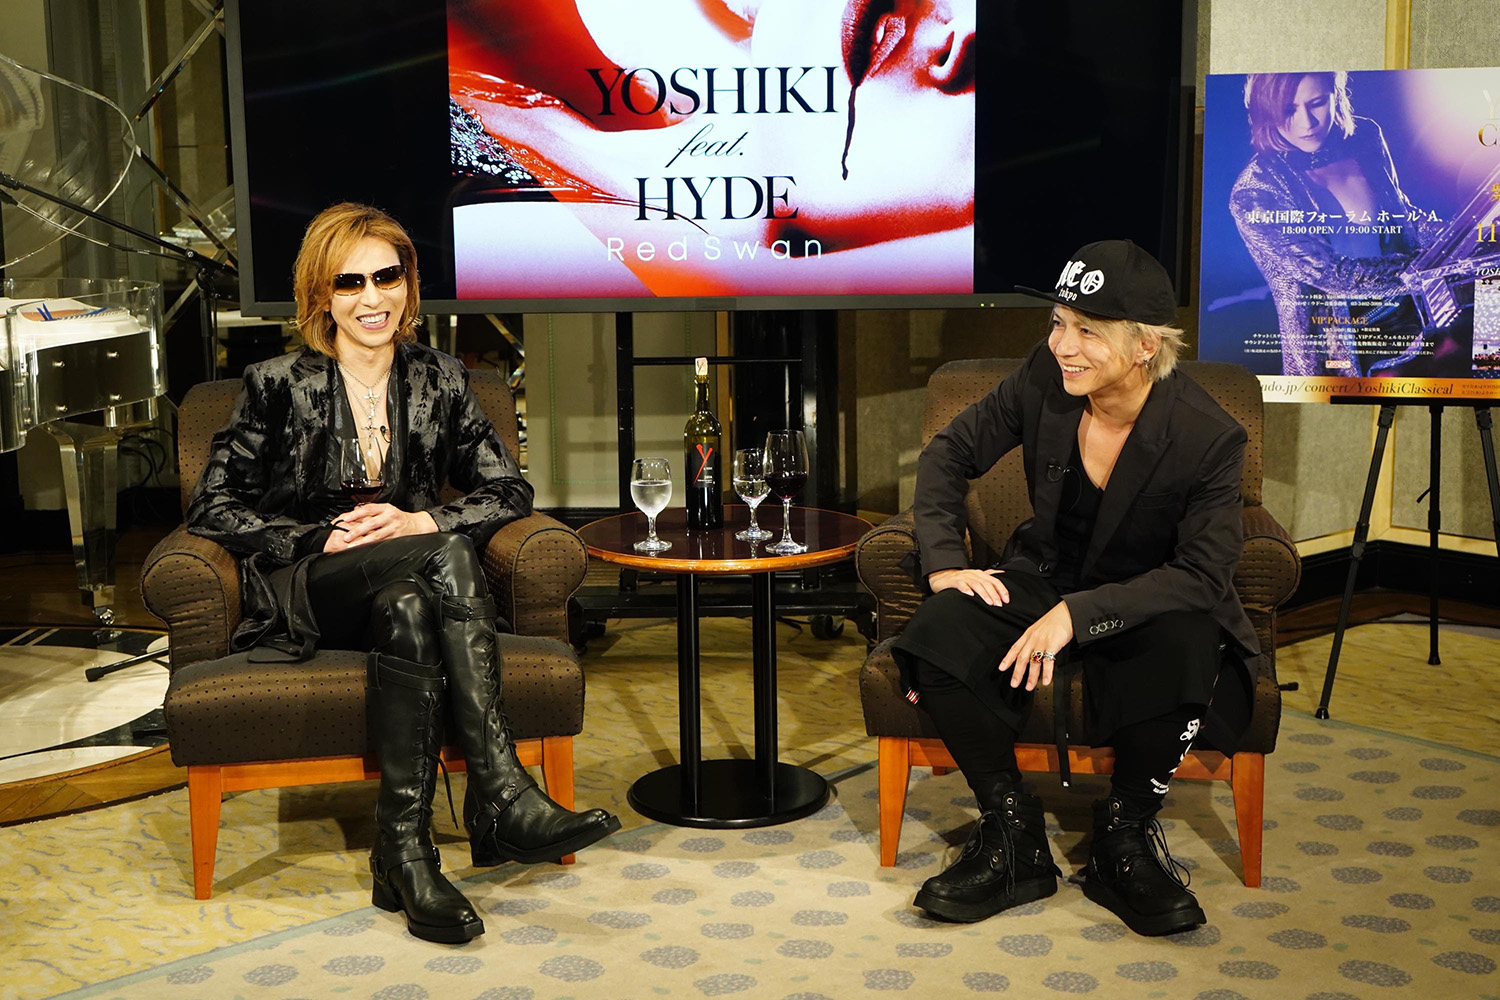 JRock247-Yoshiki-Hyde-Red-Swan-Music-Station-20180917-G0516